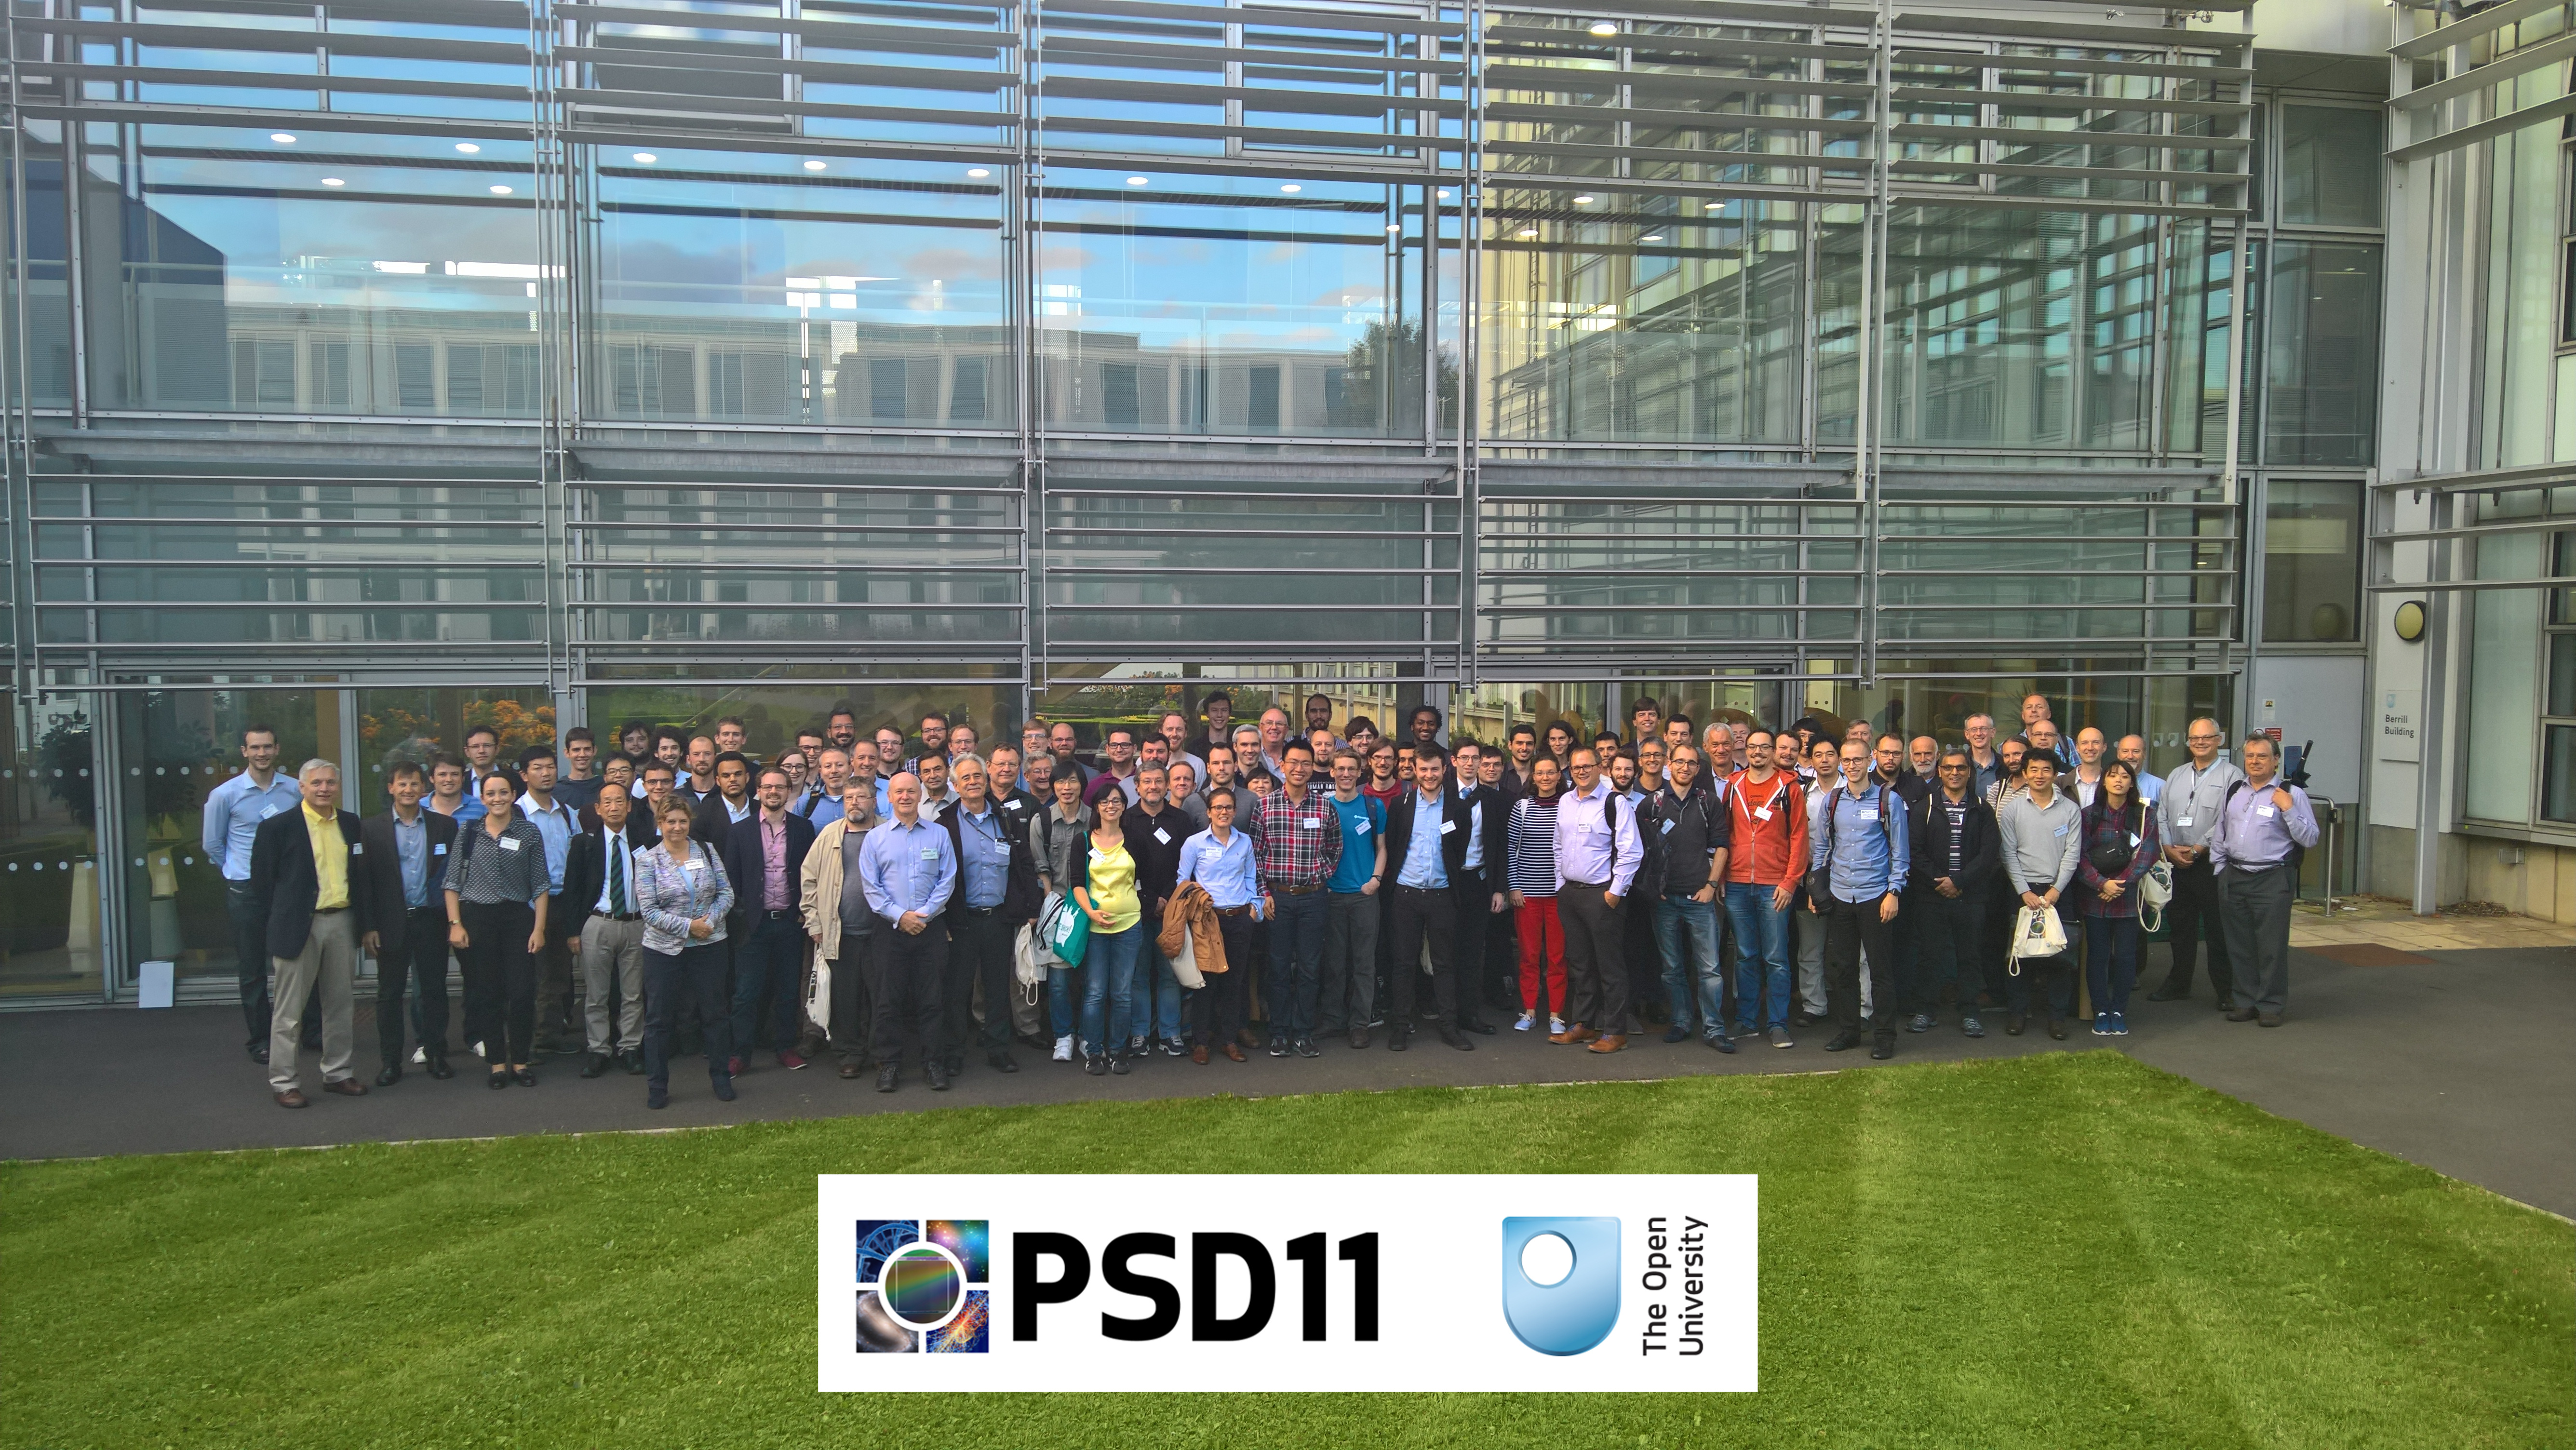 Psd11 the 11th international conference on position sensitive detectors 3 8 september 2017 for Psd11